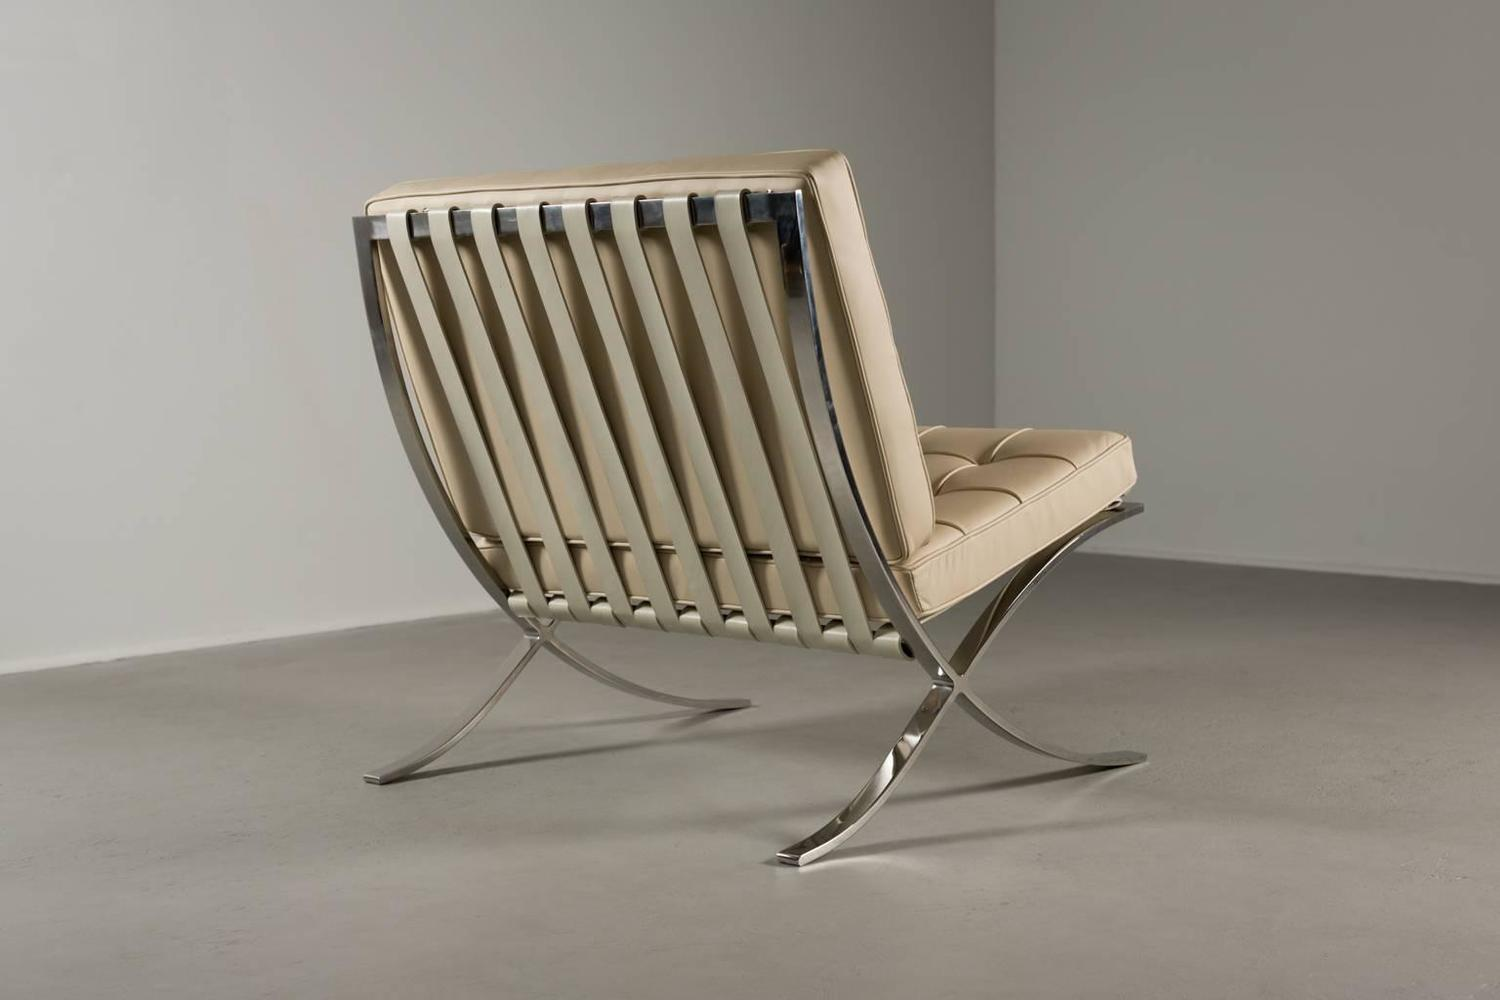 barcelona chairs for sale diy bar chair covers ludwig mies van der rohe knoll quotbarcelona quot